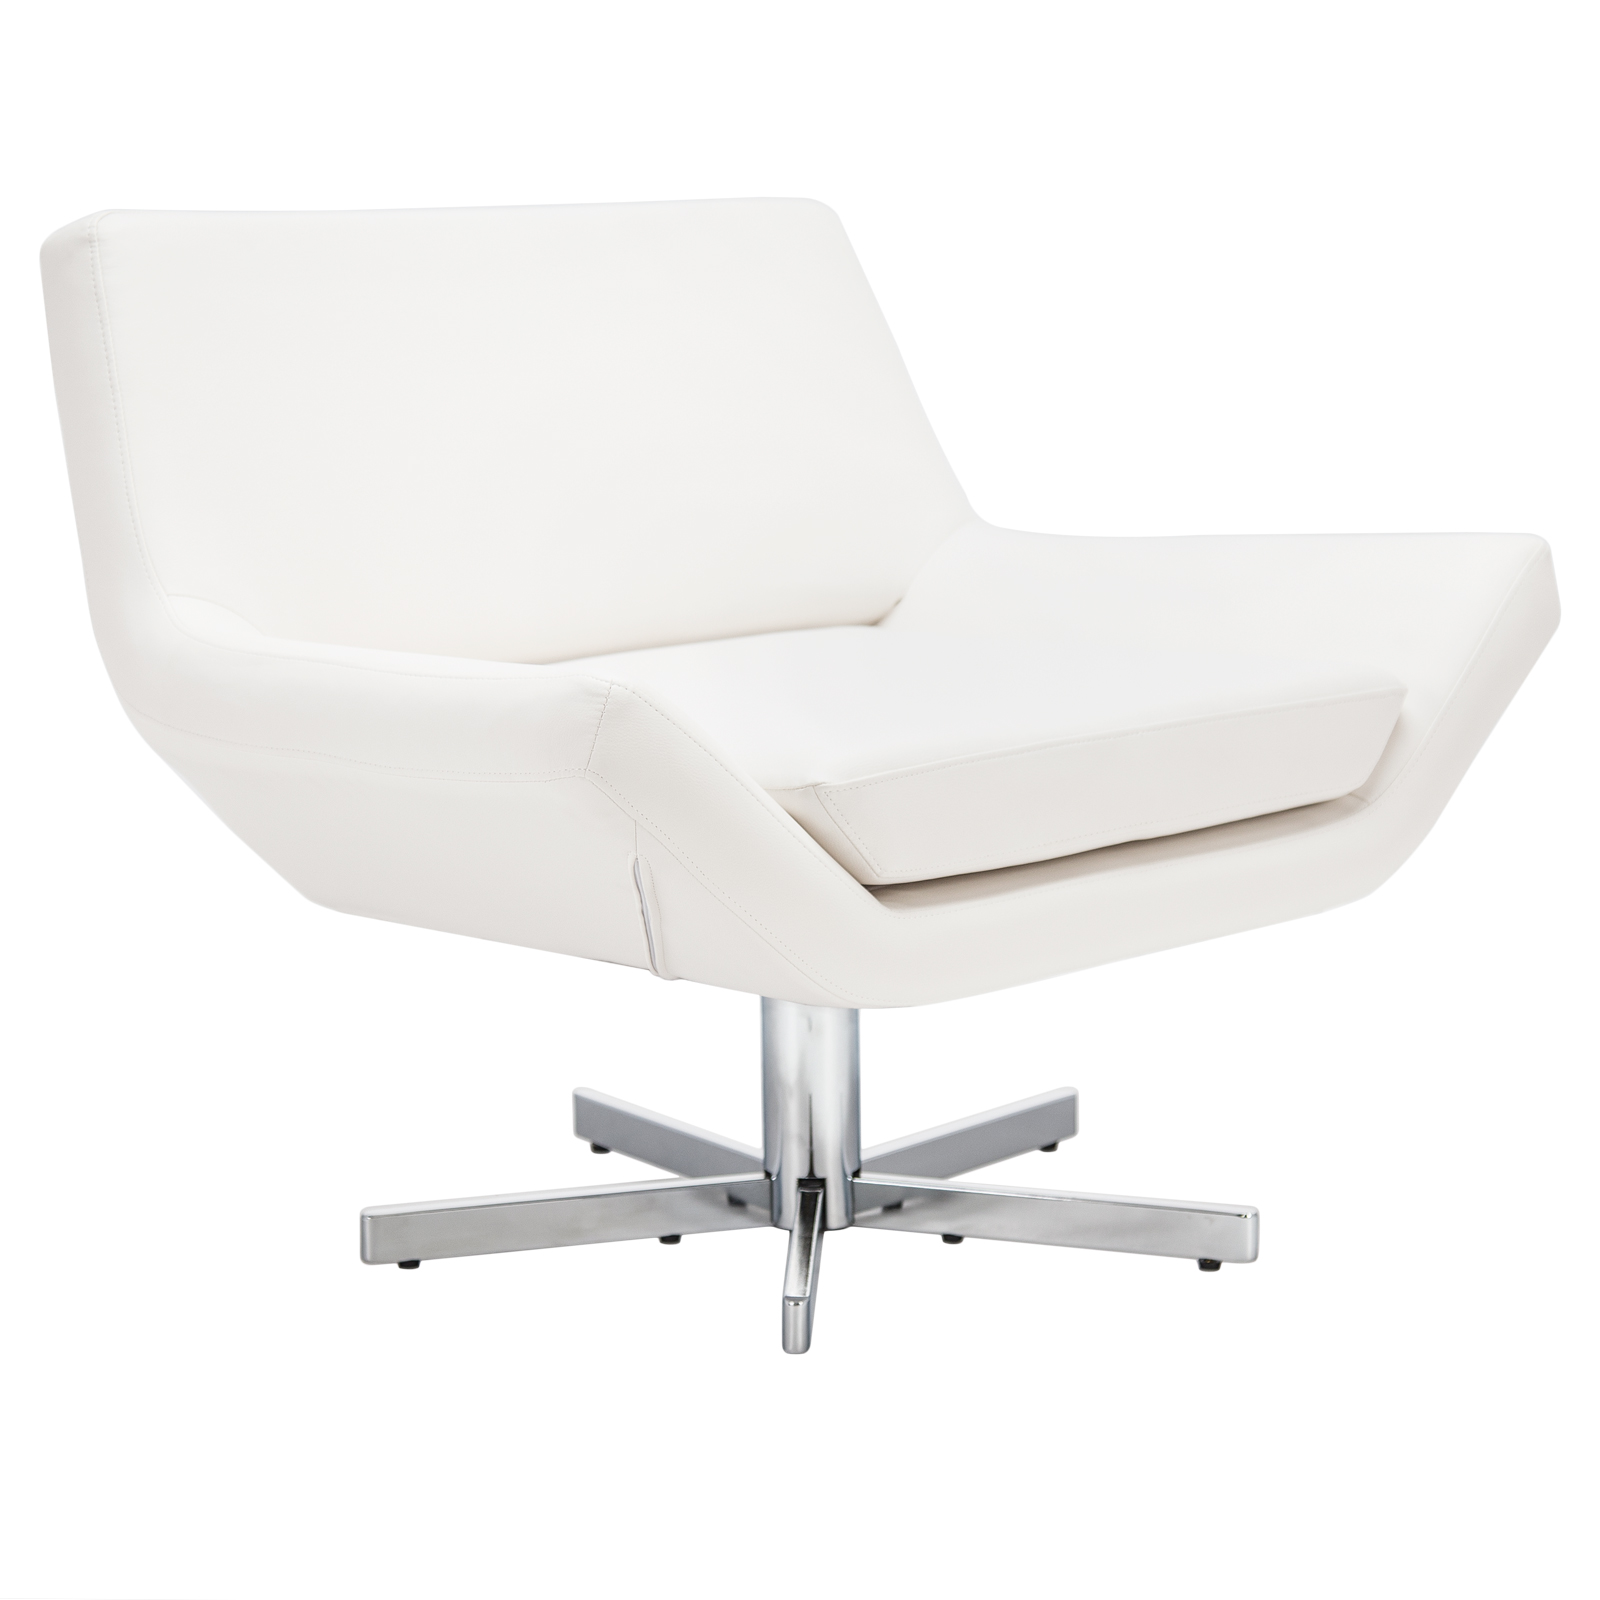 White Lounge Chair Rentals Event Furniture Rental Delivery